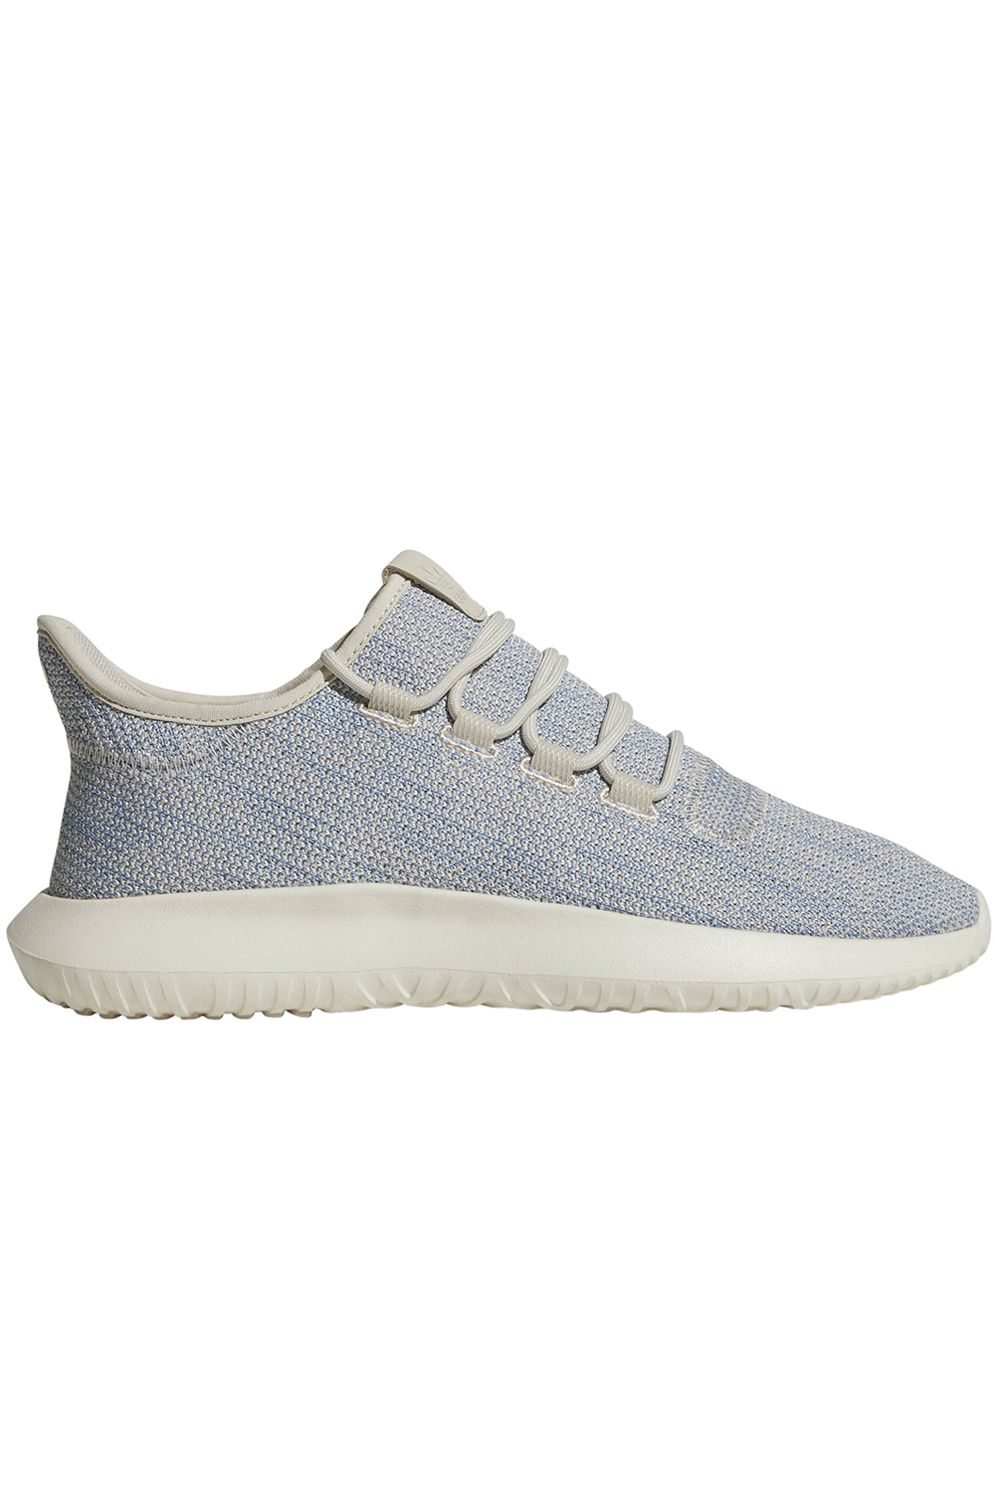 Tenis Adidas TUBULAR SHADOW CK Clear Brown/Tactile Blue S17/Chalk White